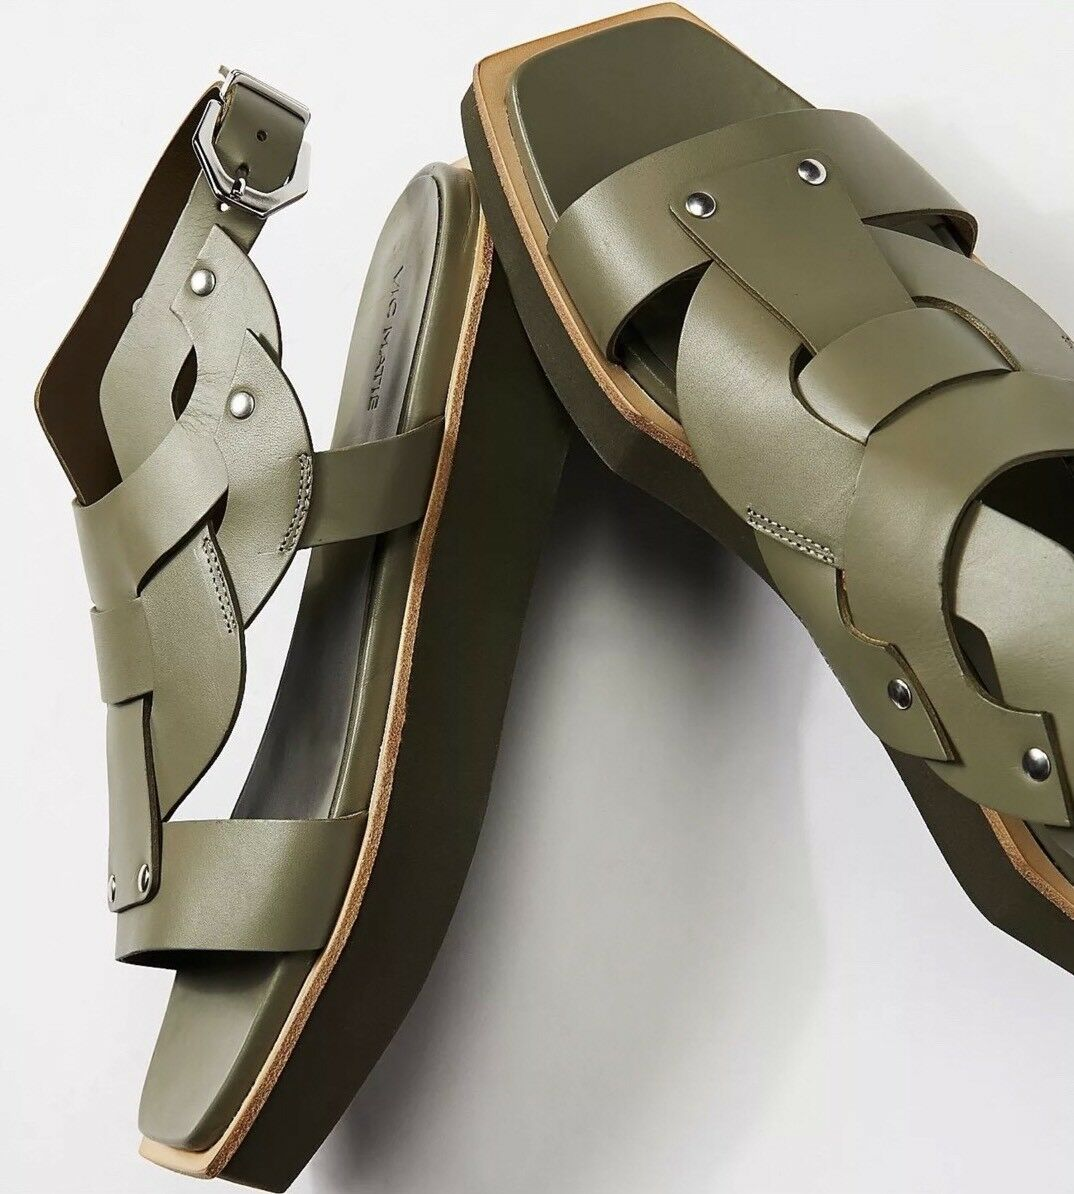 NEW  298 Free People x Vic Matie Valencia Valencia Valencia Sandals Taille 39 (8-8.5) vert Leather b36b5a